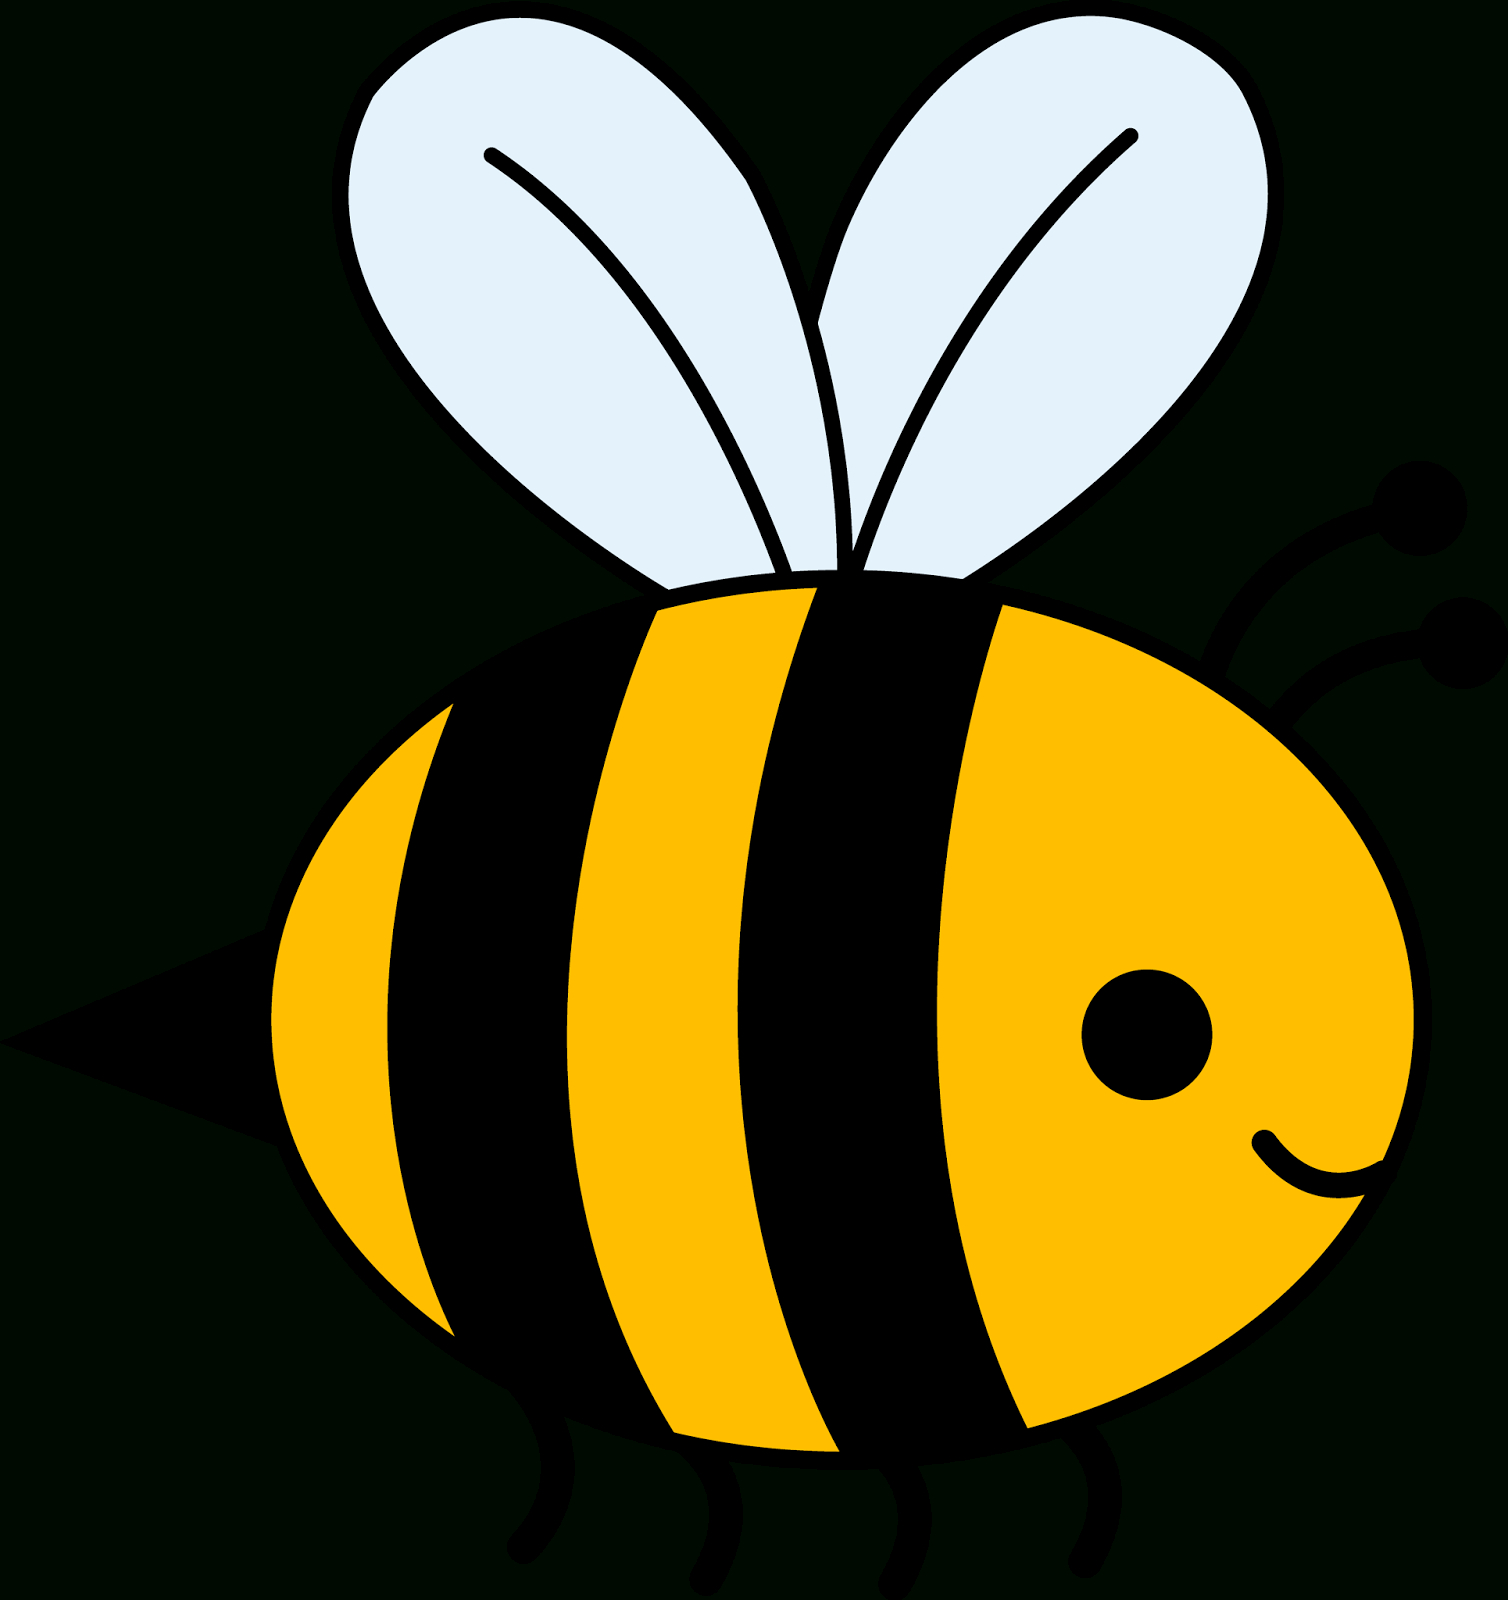 Bees clipart sketch. Simple bee drawing at